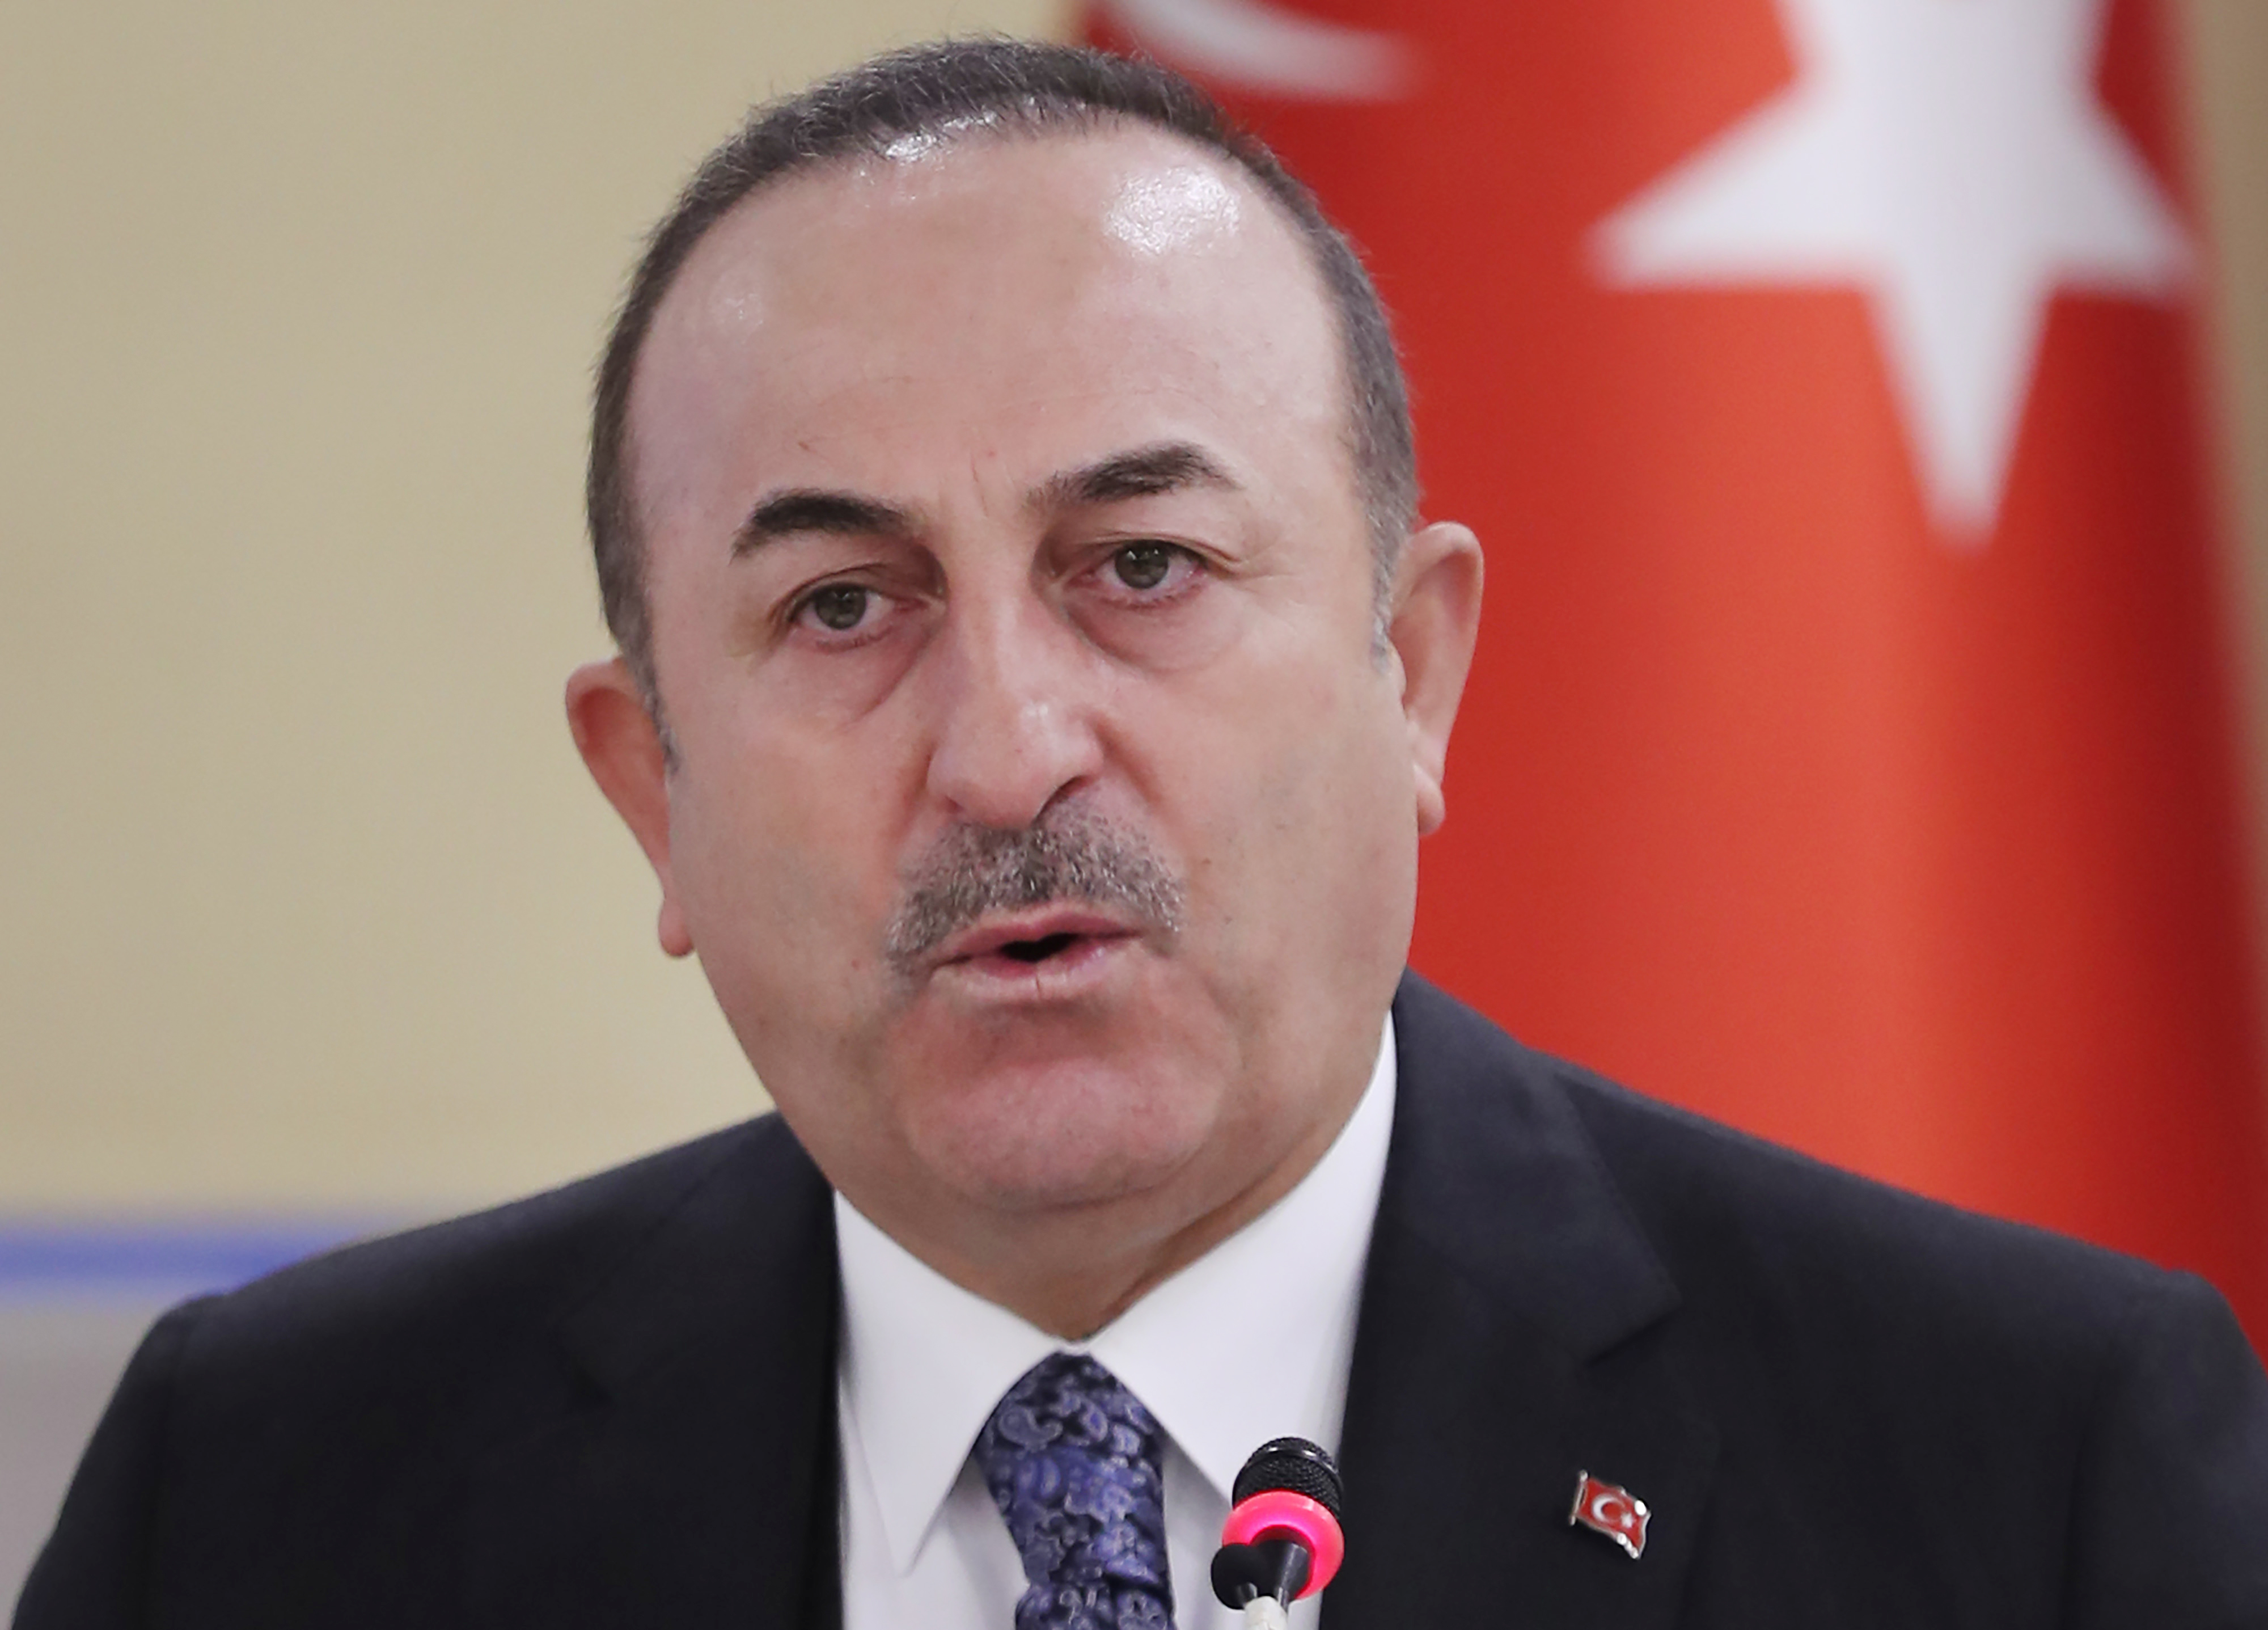 Turkish Foreign Minister Mevlut Cavusoglu issued a statement Wednesday.